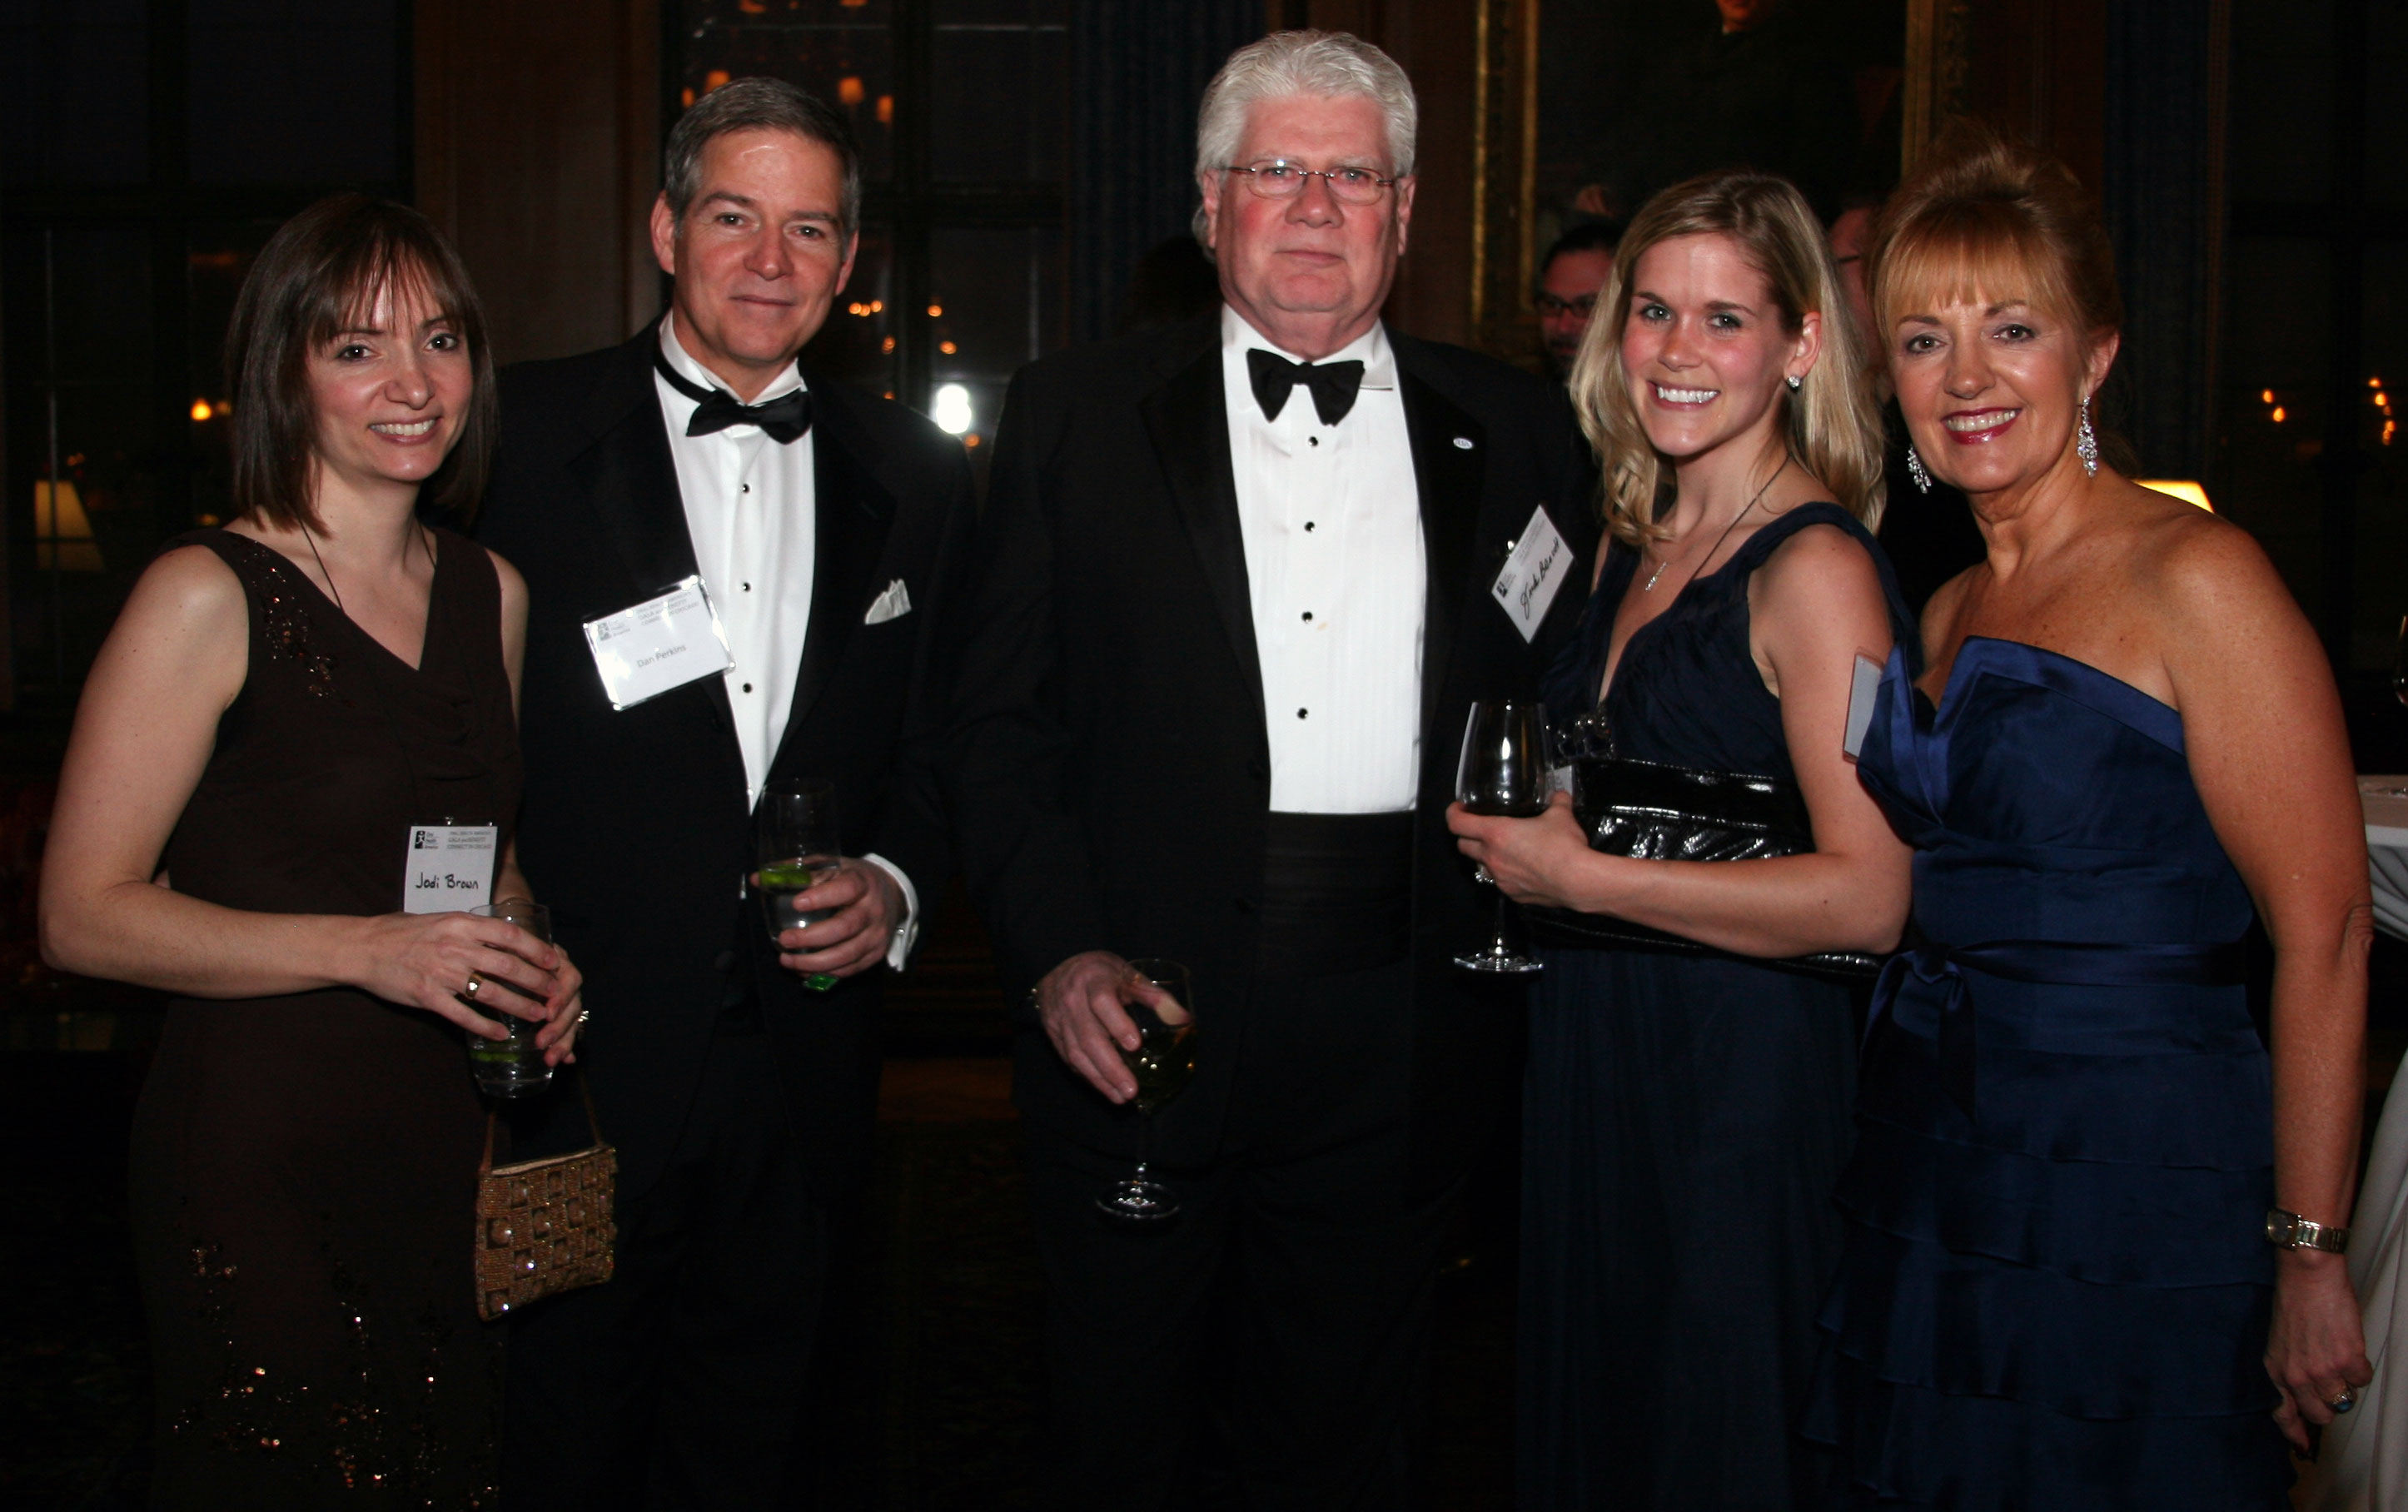 Gala attendees (left to right): Jodi Brown of Walgreens Co., Dan Perkins of ADEA corporate member AEGIS Communications, ADEA Associate Executive Director and Director of the Center for Public Policy and Advocacy Jack Bresch, Jen Hull of Trident, and Beth Truett of Oral Health America.